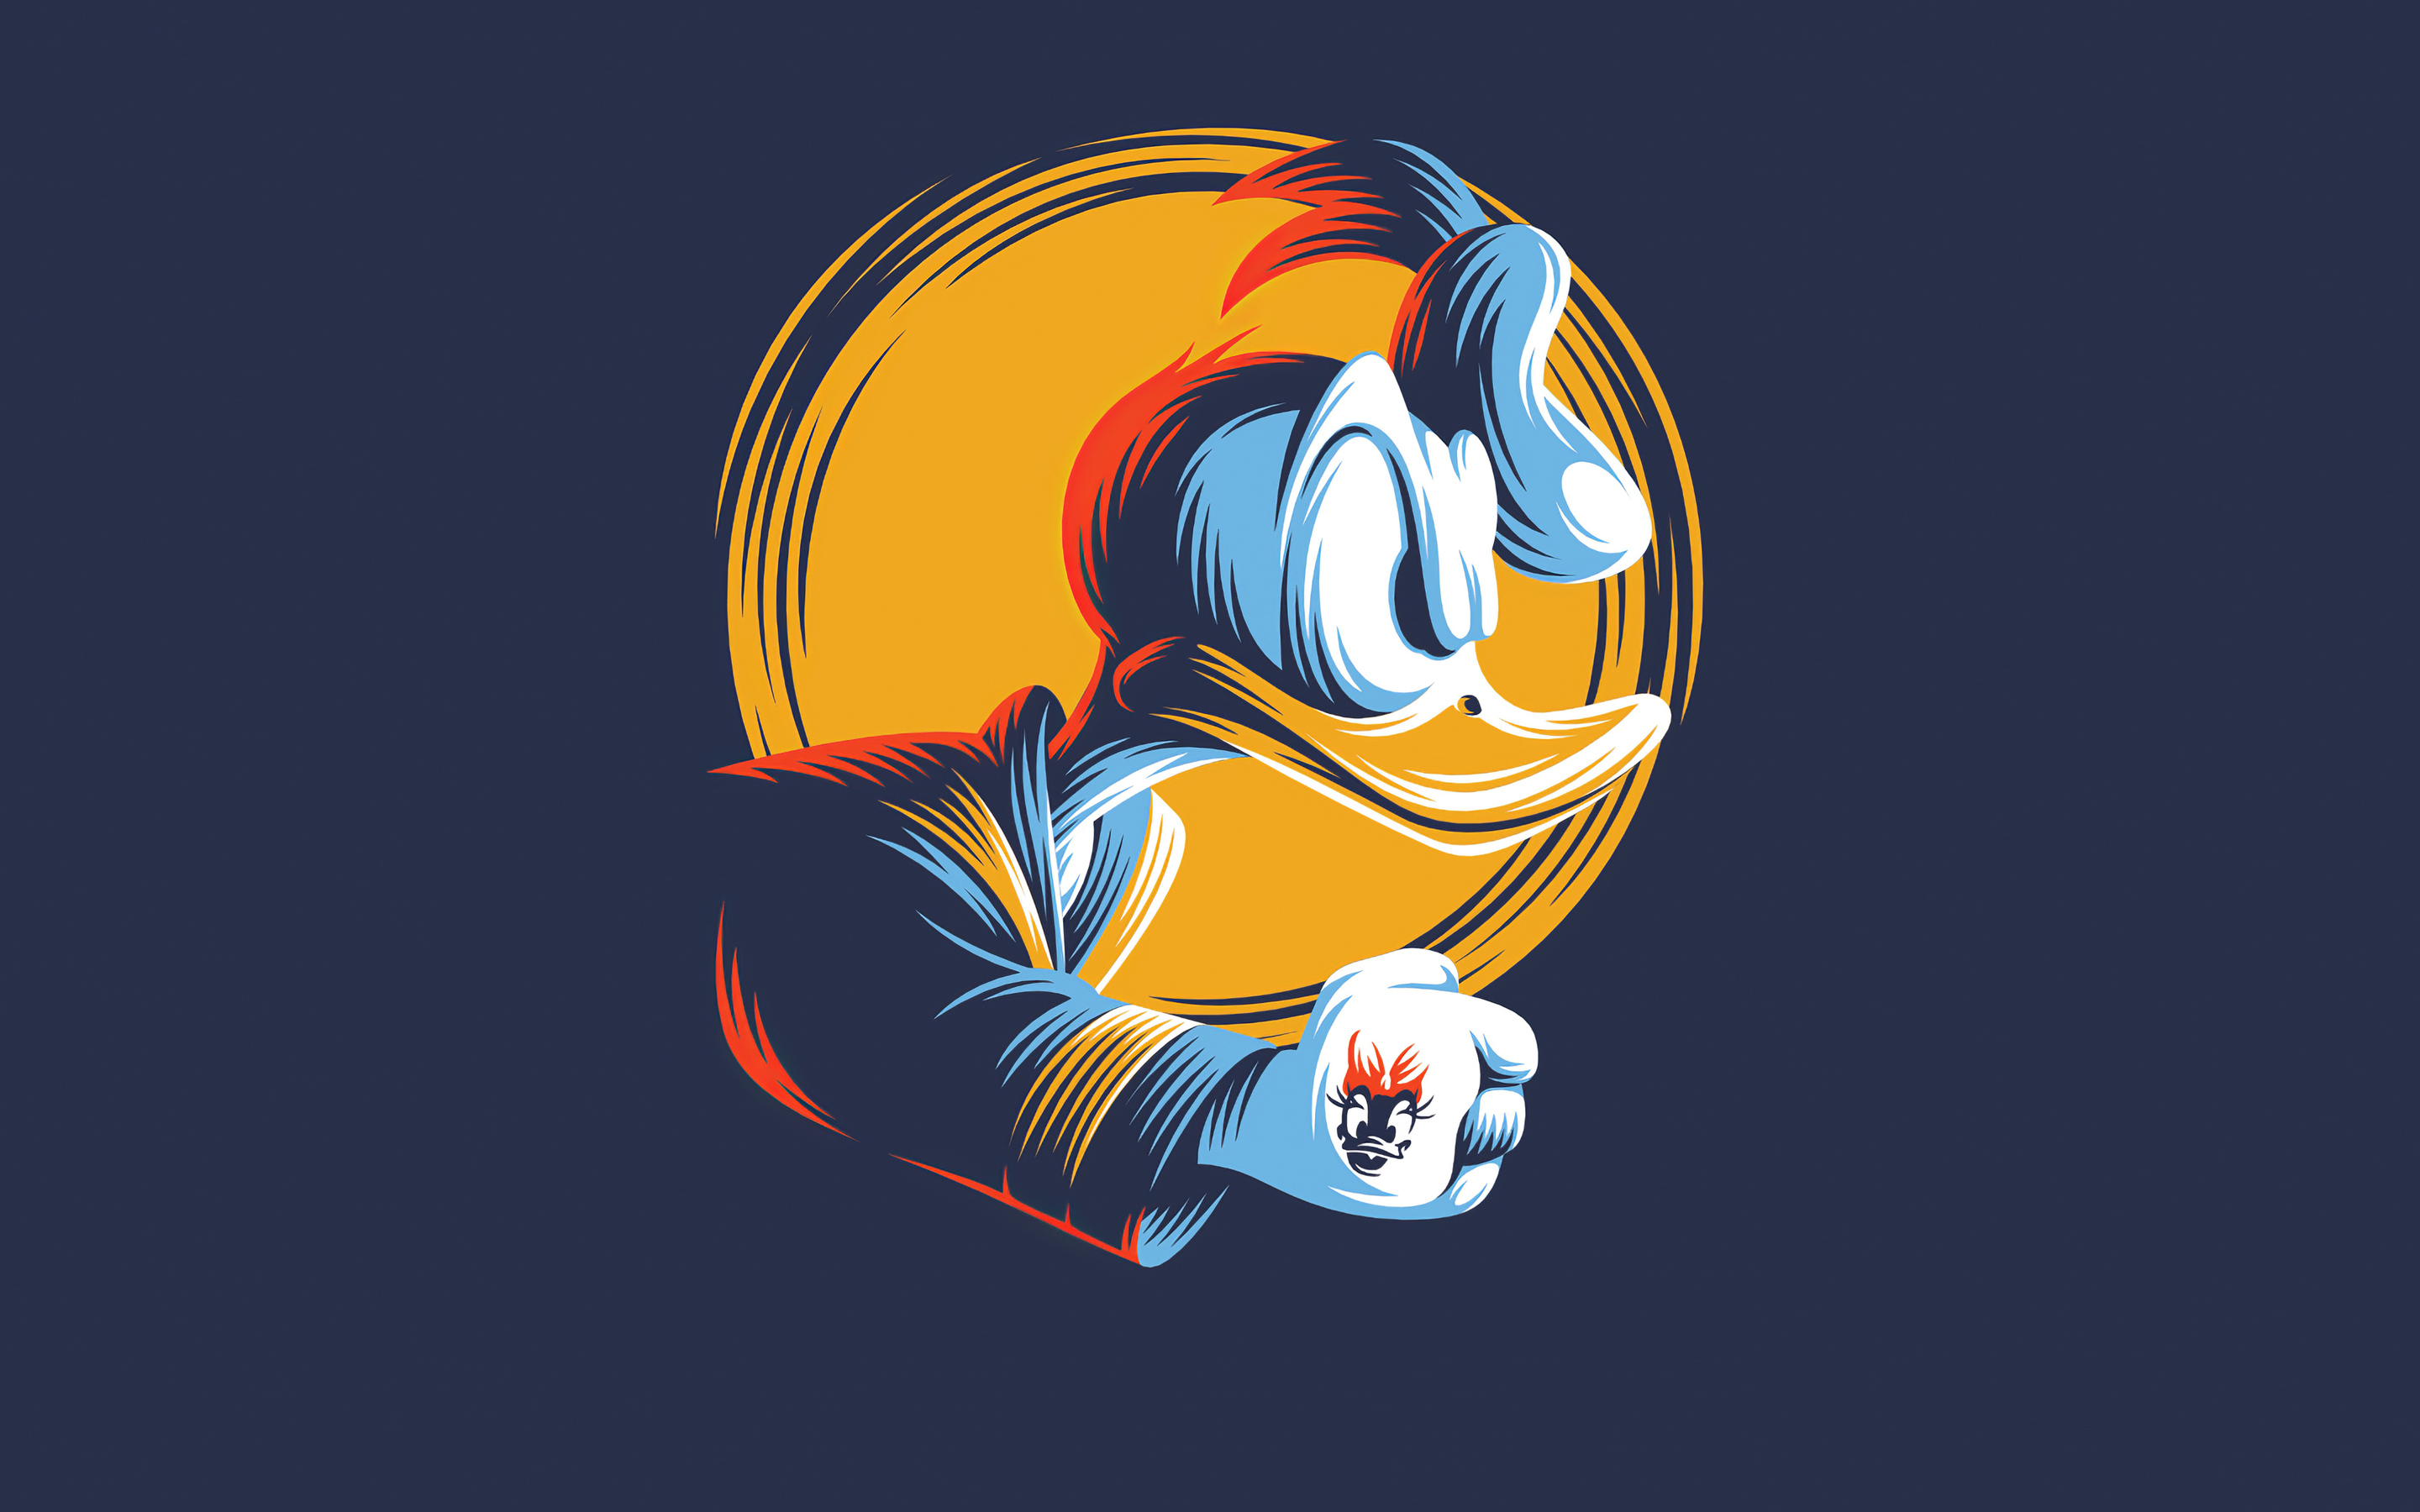 donald-duck-minimal-art-4k-yi.jpg